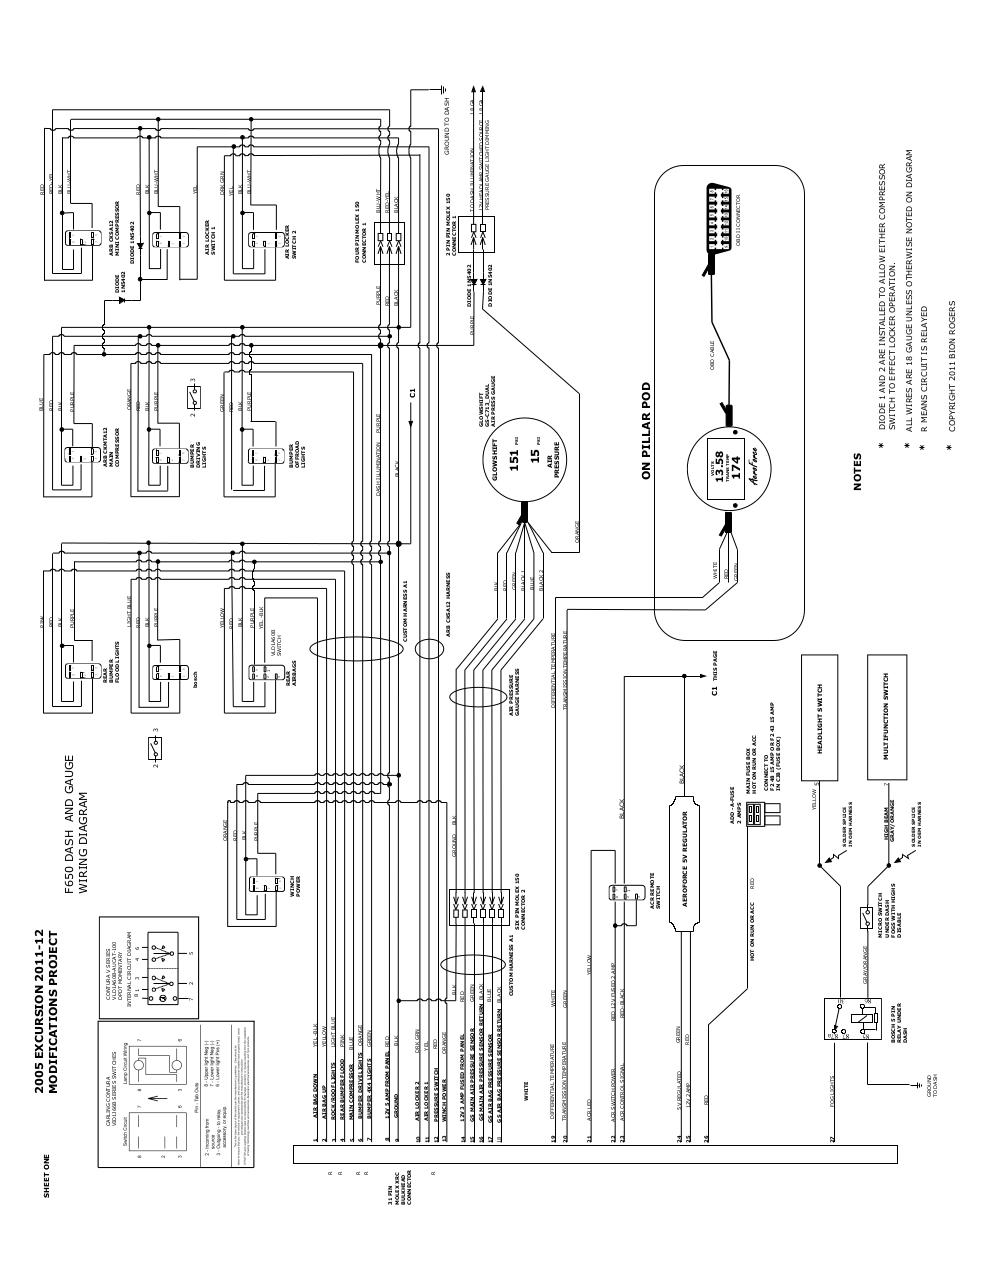 preview sheet 1 1 sheet 1 pdf pdf archive arb ckma12 wiring diagram at fashall.co